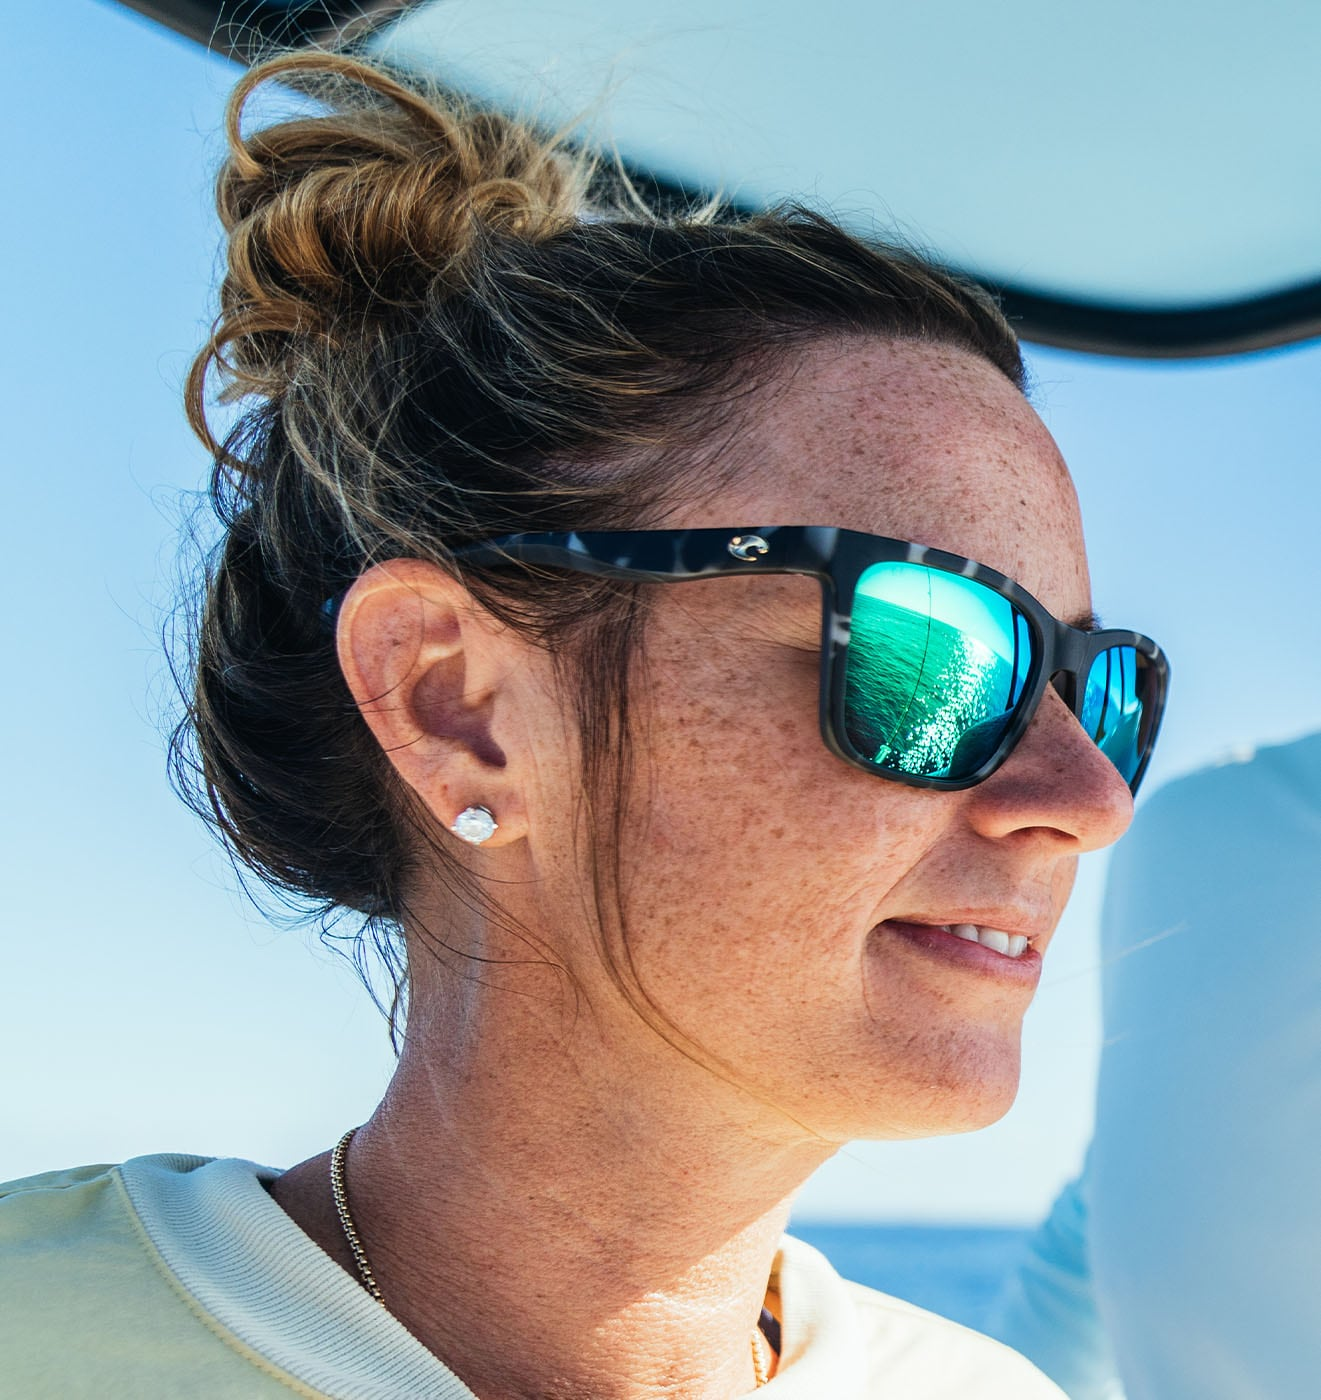 Top 10 Fishing Sunglasses